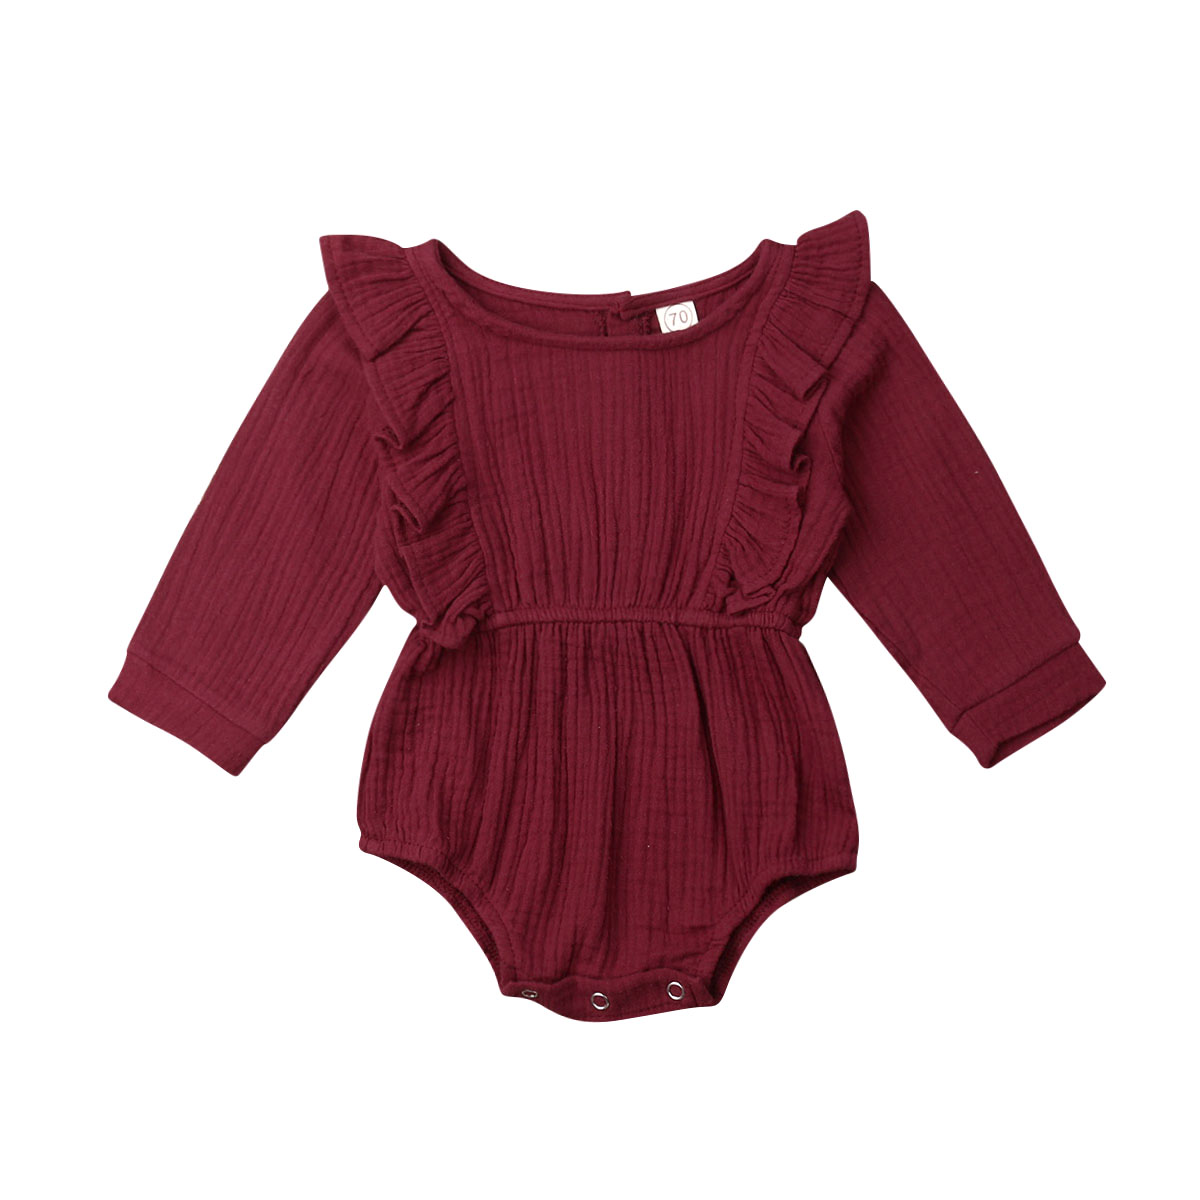 Wine Red Newborn Baby Girl Long Sleeve Ruffles Cotton Button Bodysuit Jumpsuit One Pieces Baby Clothes